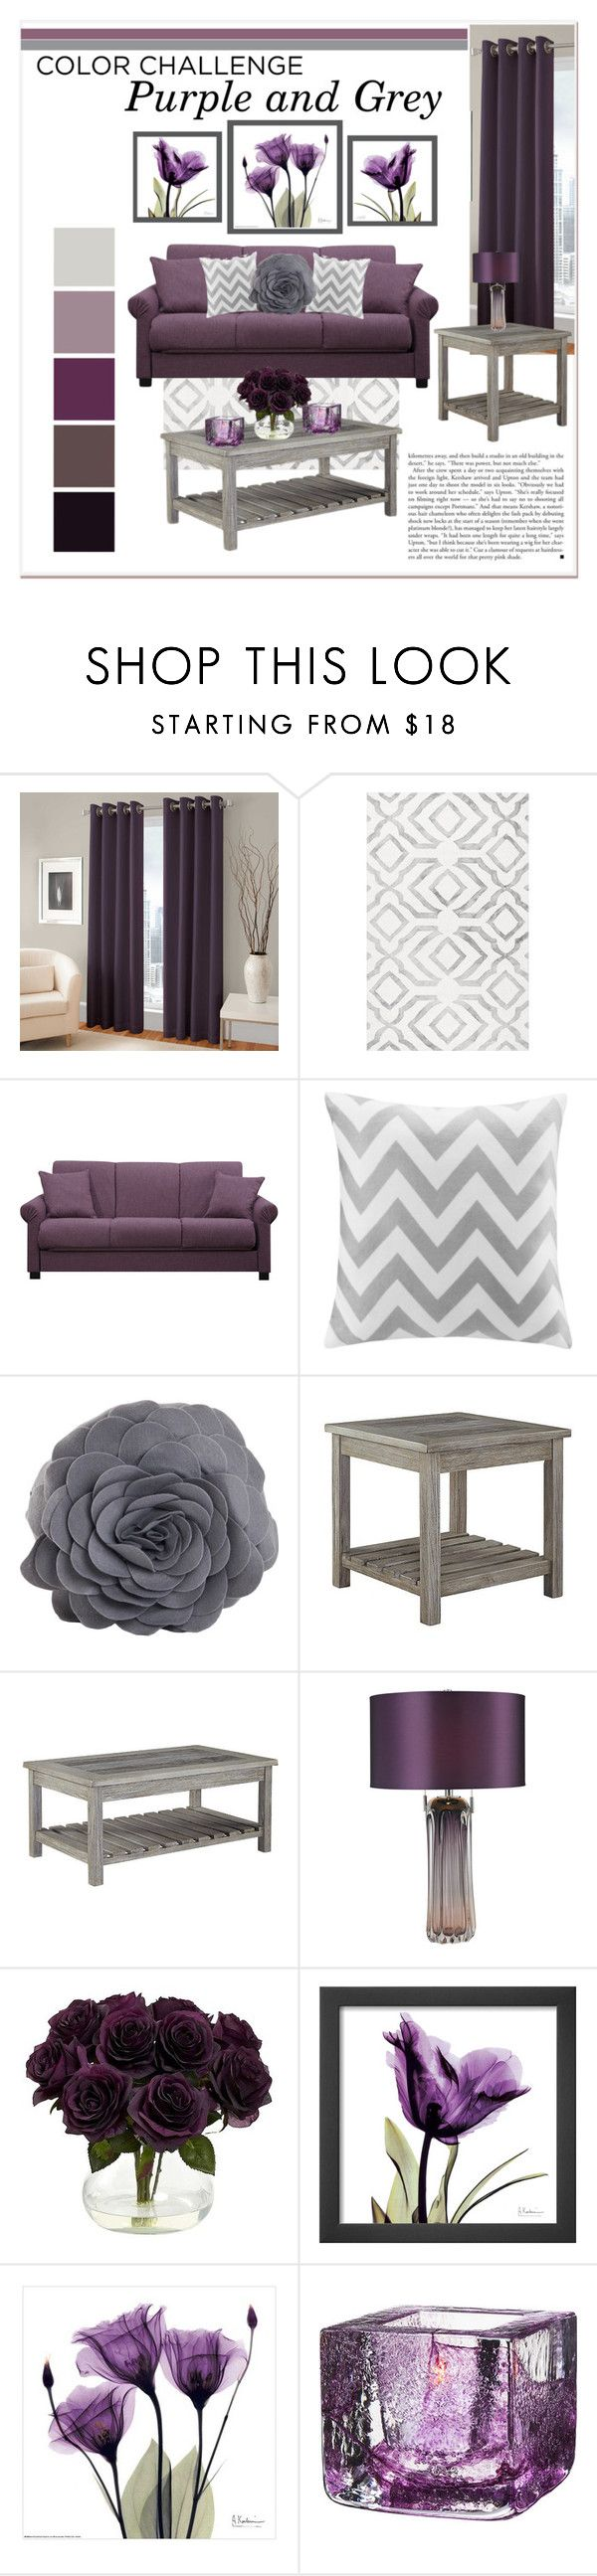 9 best House Deco images on Pinterest   Home ideas, Living room and ...